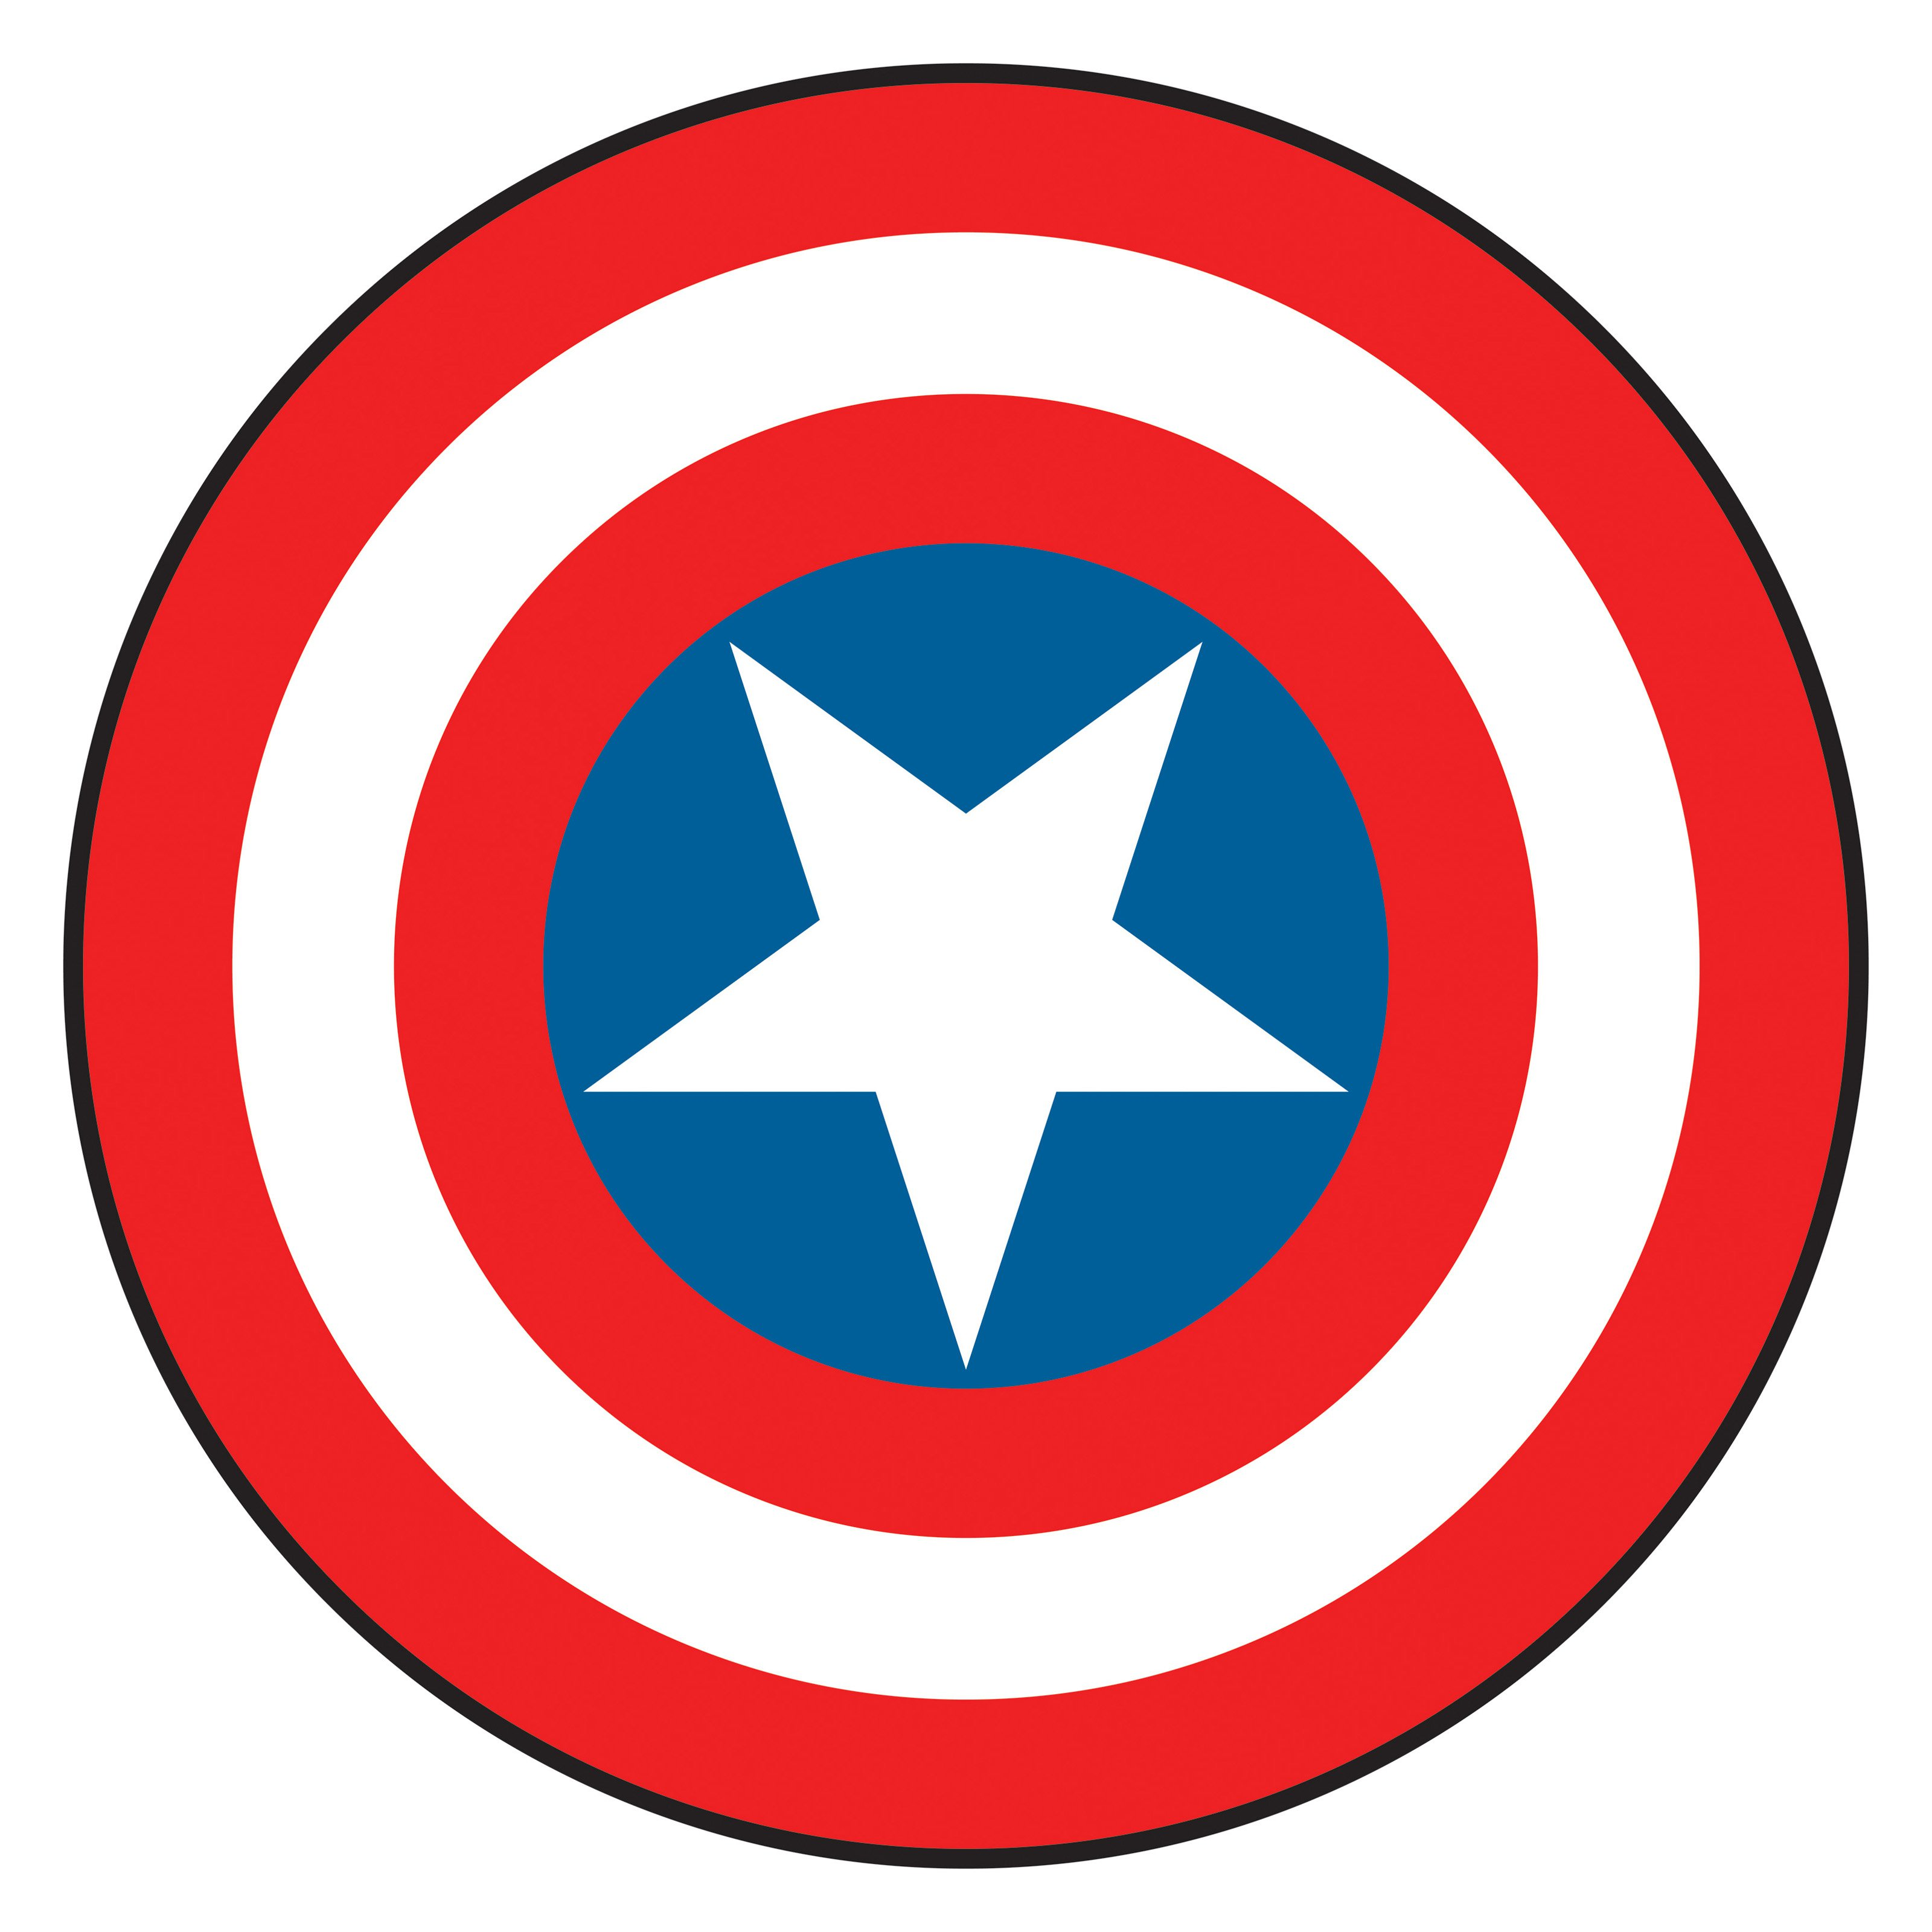 Captain America clipart #10, Download drawings